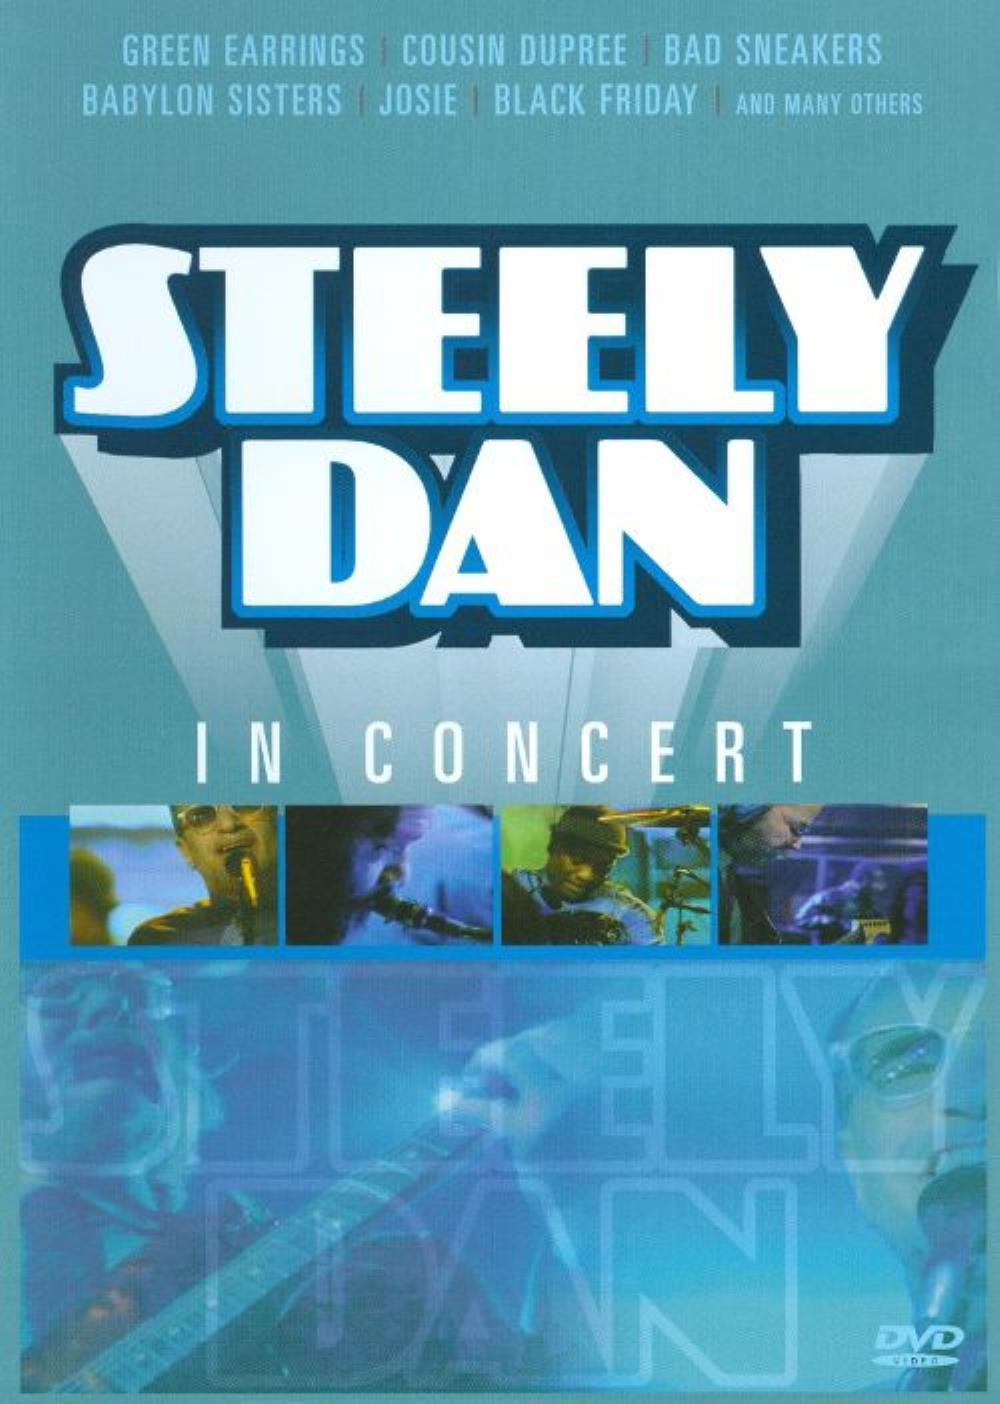 In Concert by STEELY DAN album cover